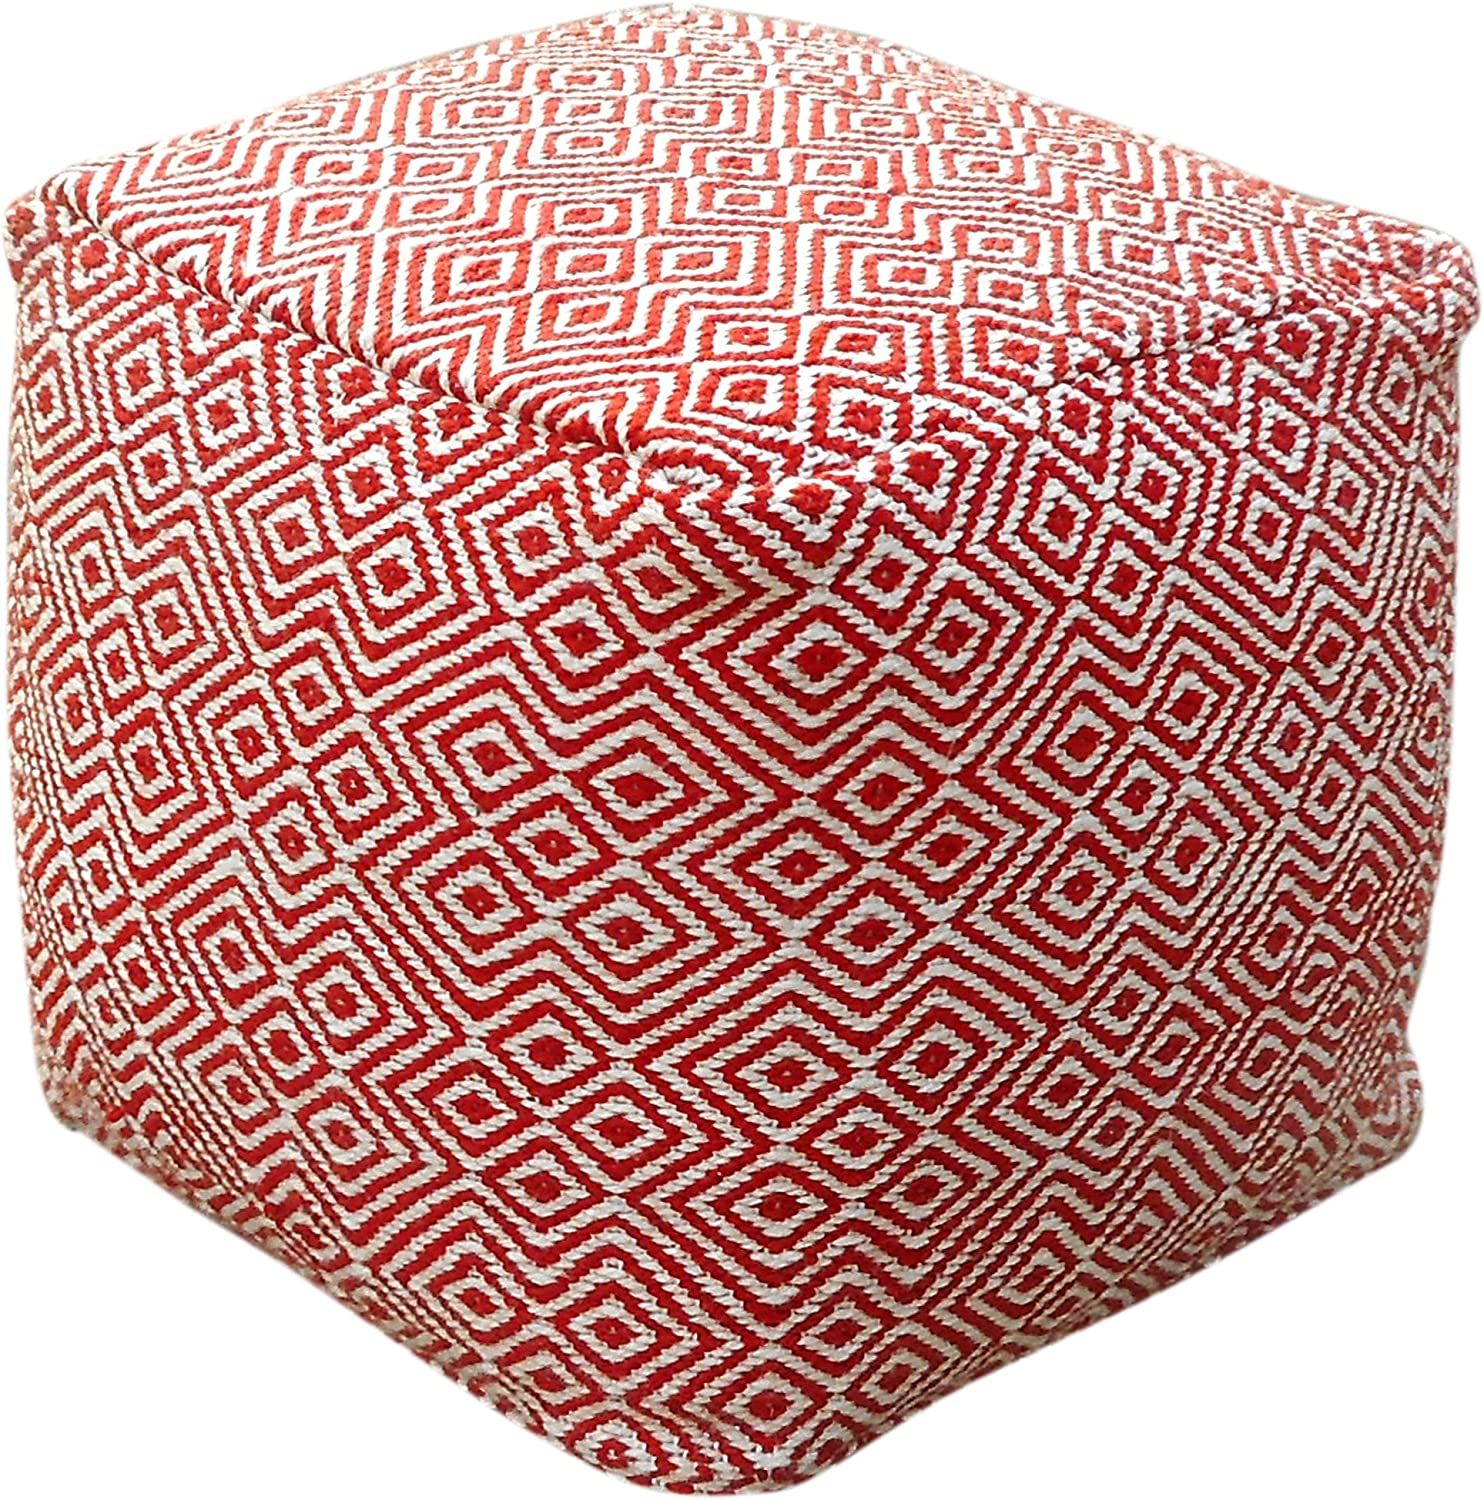 Christopher Knight Home Adkins Max 62% OFF Indoor Boho Modern Special sale item wi Pouf Ivory